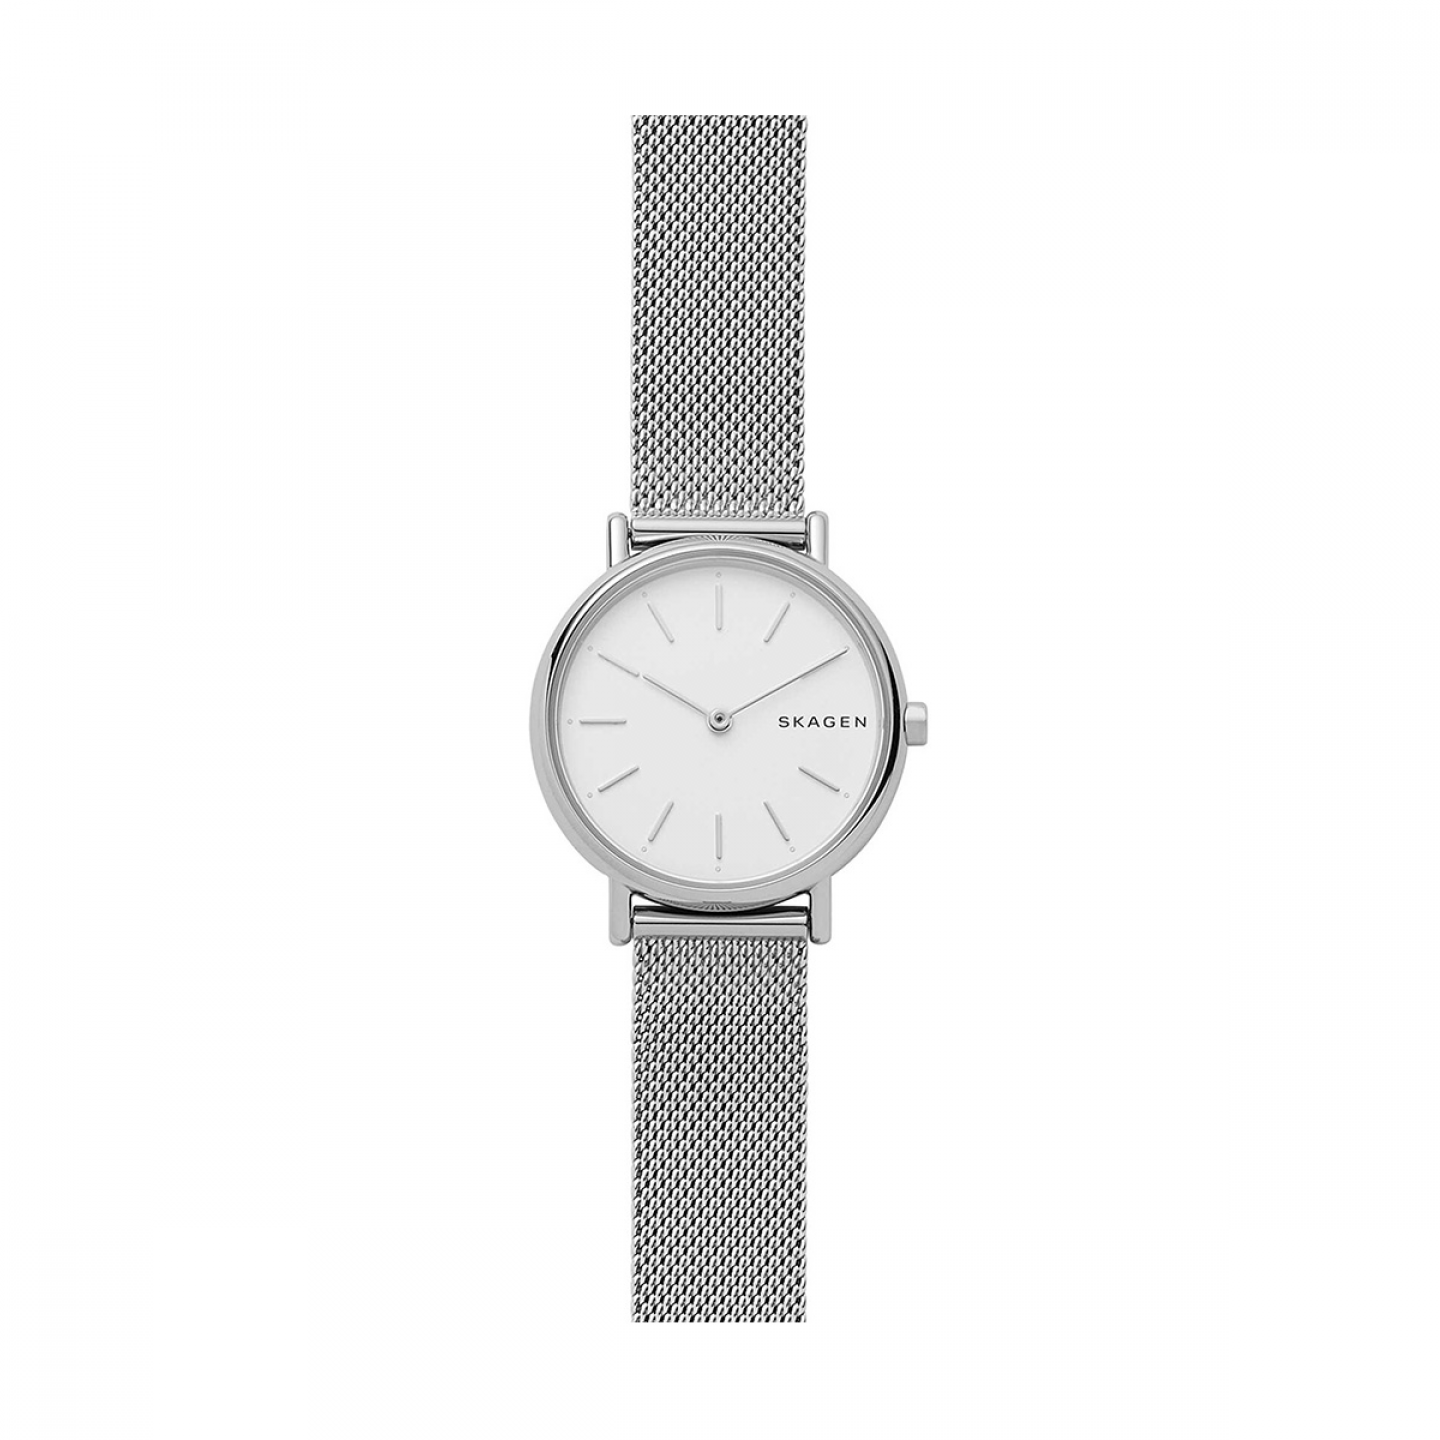 Relógio SKAGEN Signatur Prateado   watches   Pinterest   Watches and ... 1f07c1c6aa